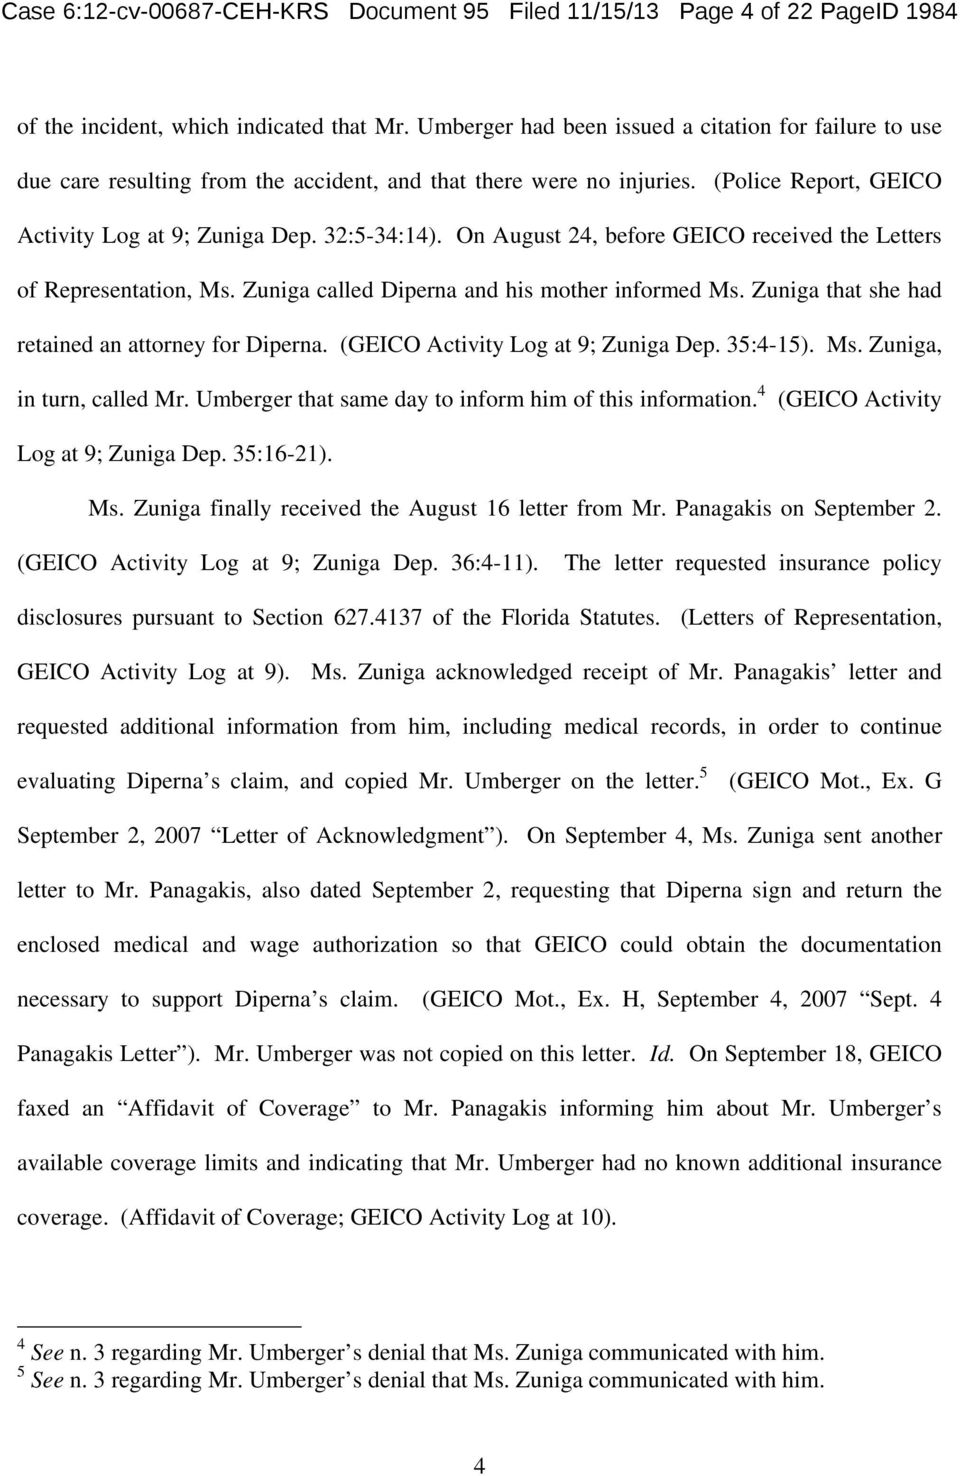 On August 24, before GEICO received the Letters of Representation, Ms. Zuniga called Diperna and his mother informed Ms. Zuniga that she had retained an attorney for Diperna.